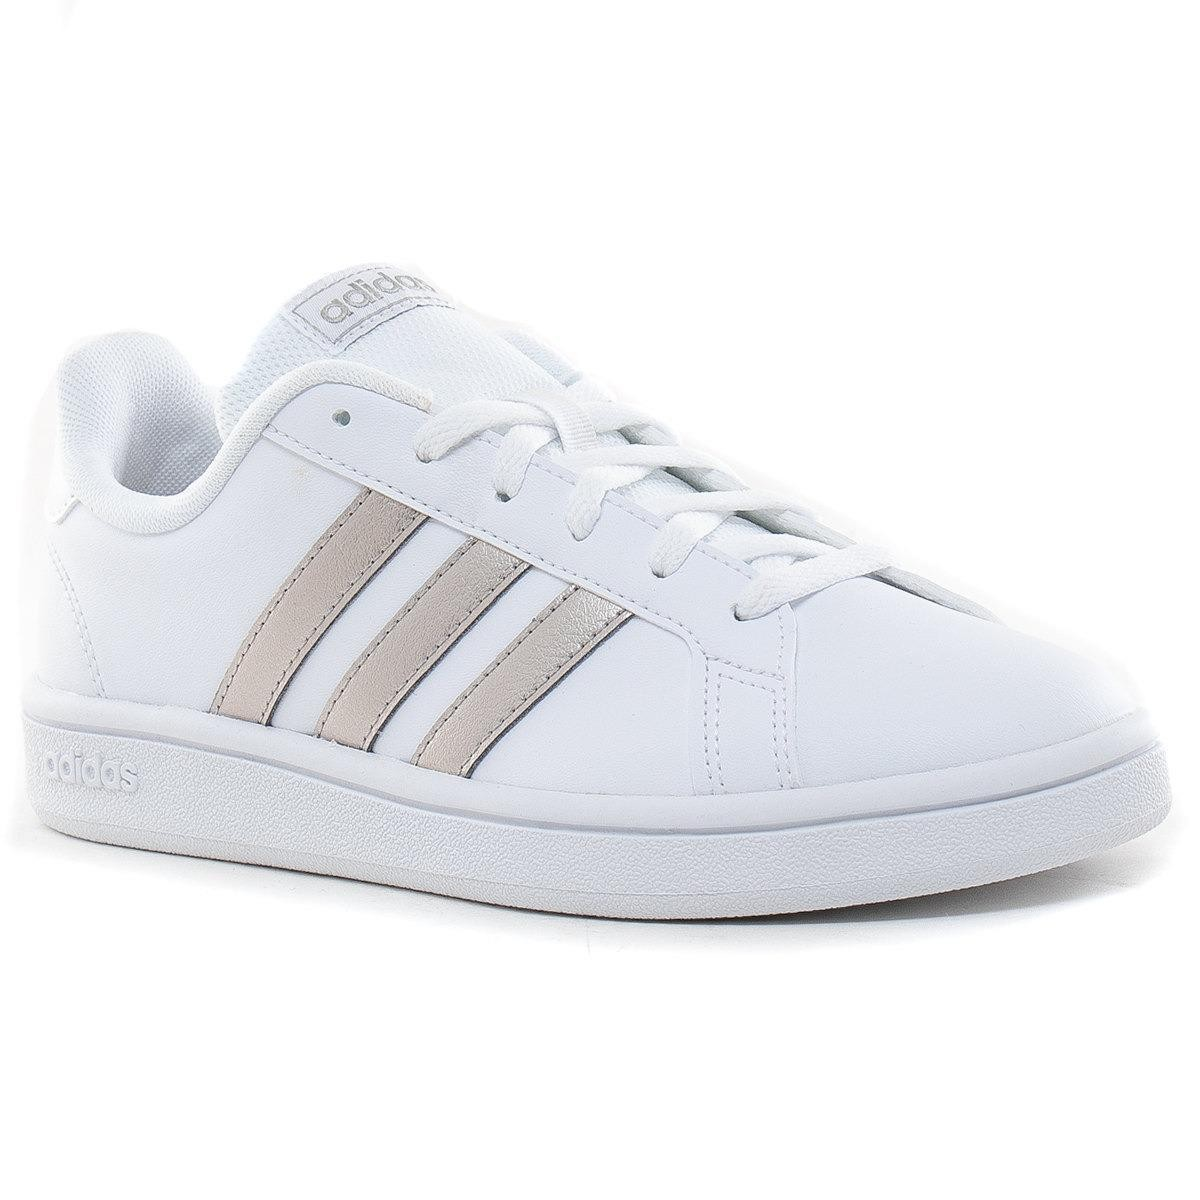 adidas grand court base ee7874